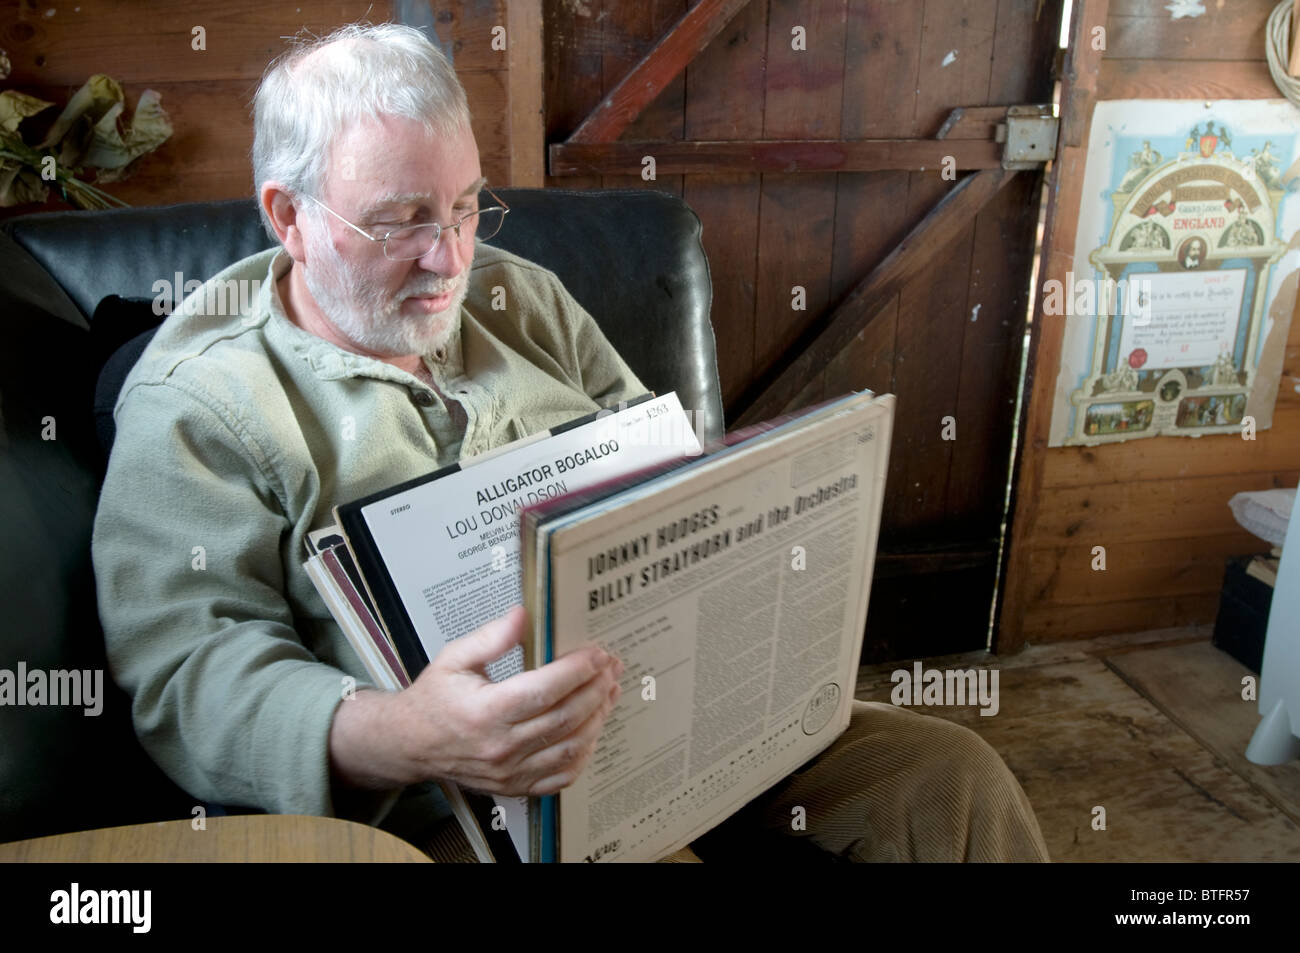 A 65 year old jazz enthusiast looks through records in his shed - Stock Image